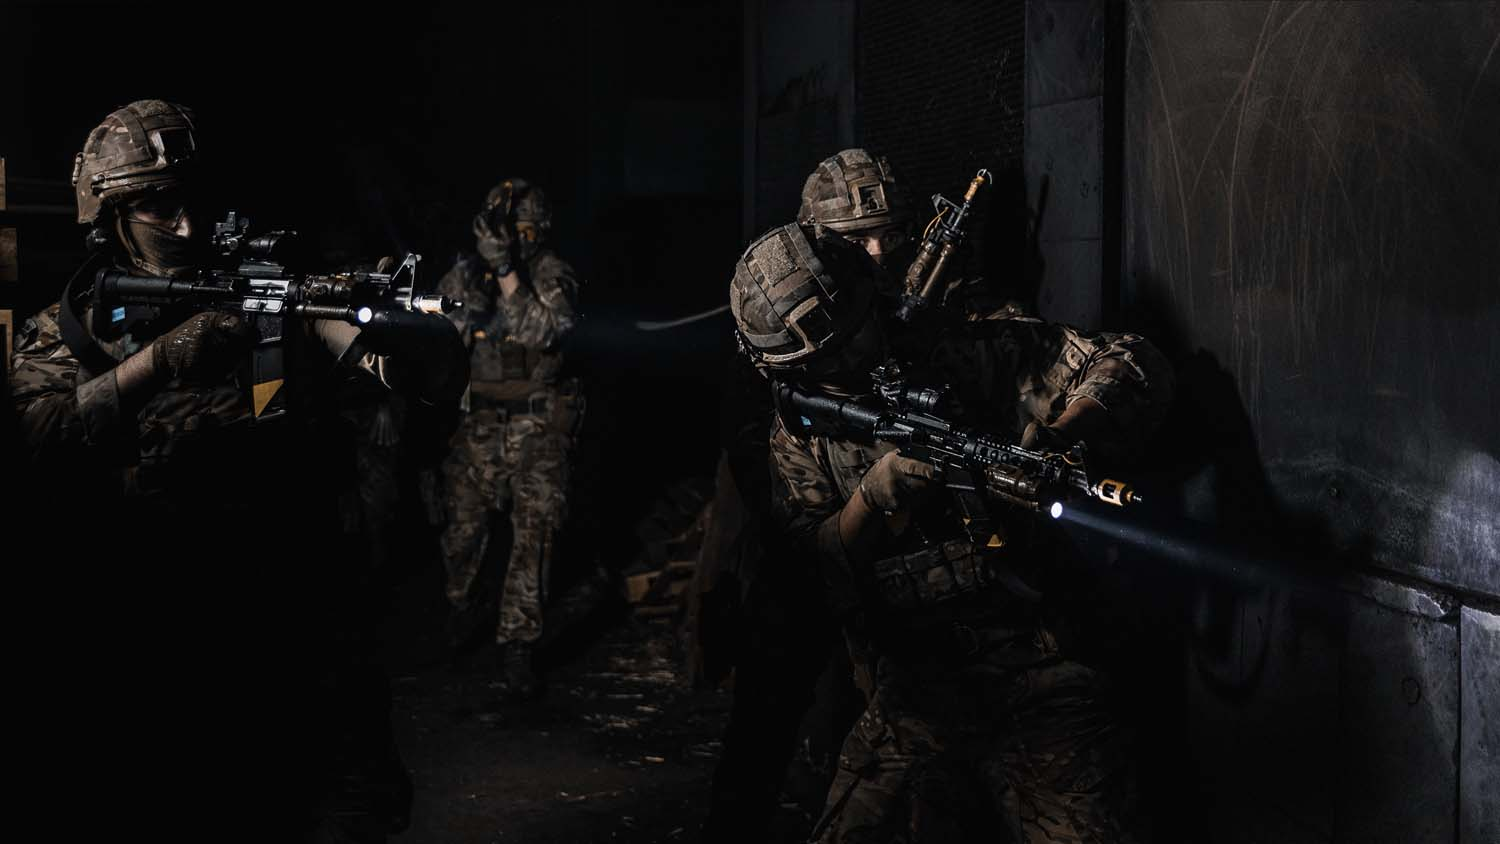 Royal Marines of 43 Commando train in various environments to test their skills in protecting the UK's nuclear deterrent